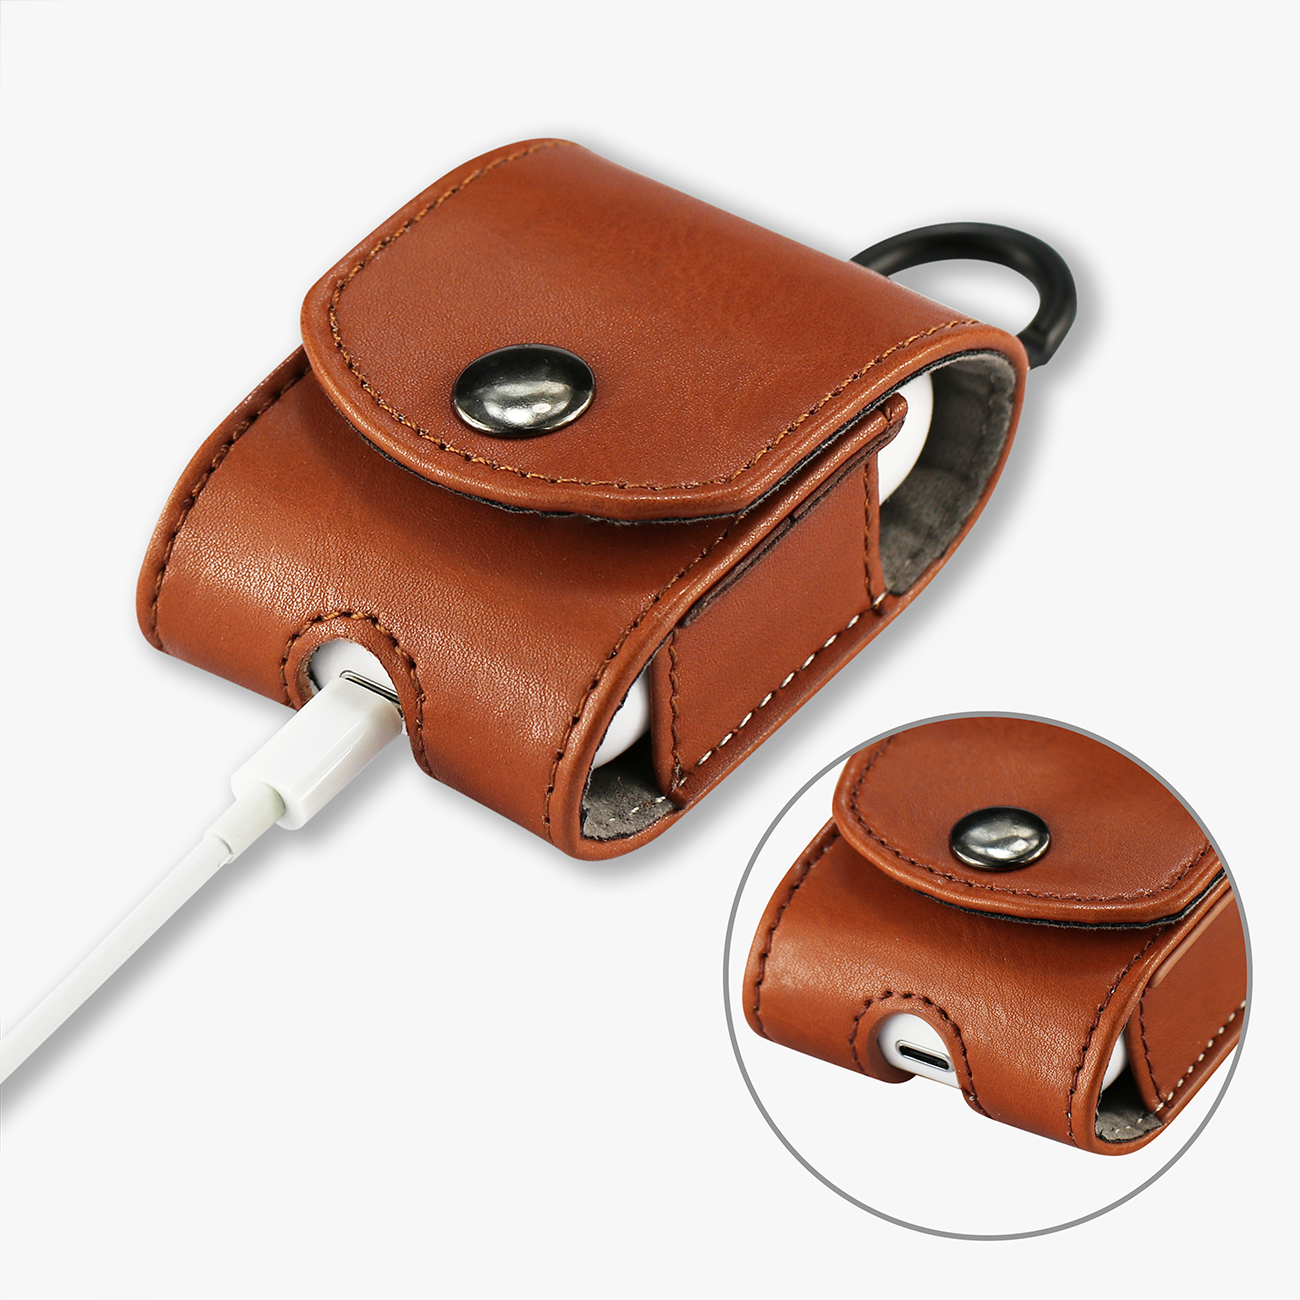 leather Case for Airpod in Brown